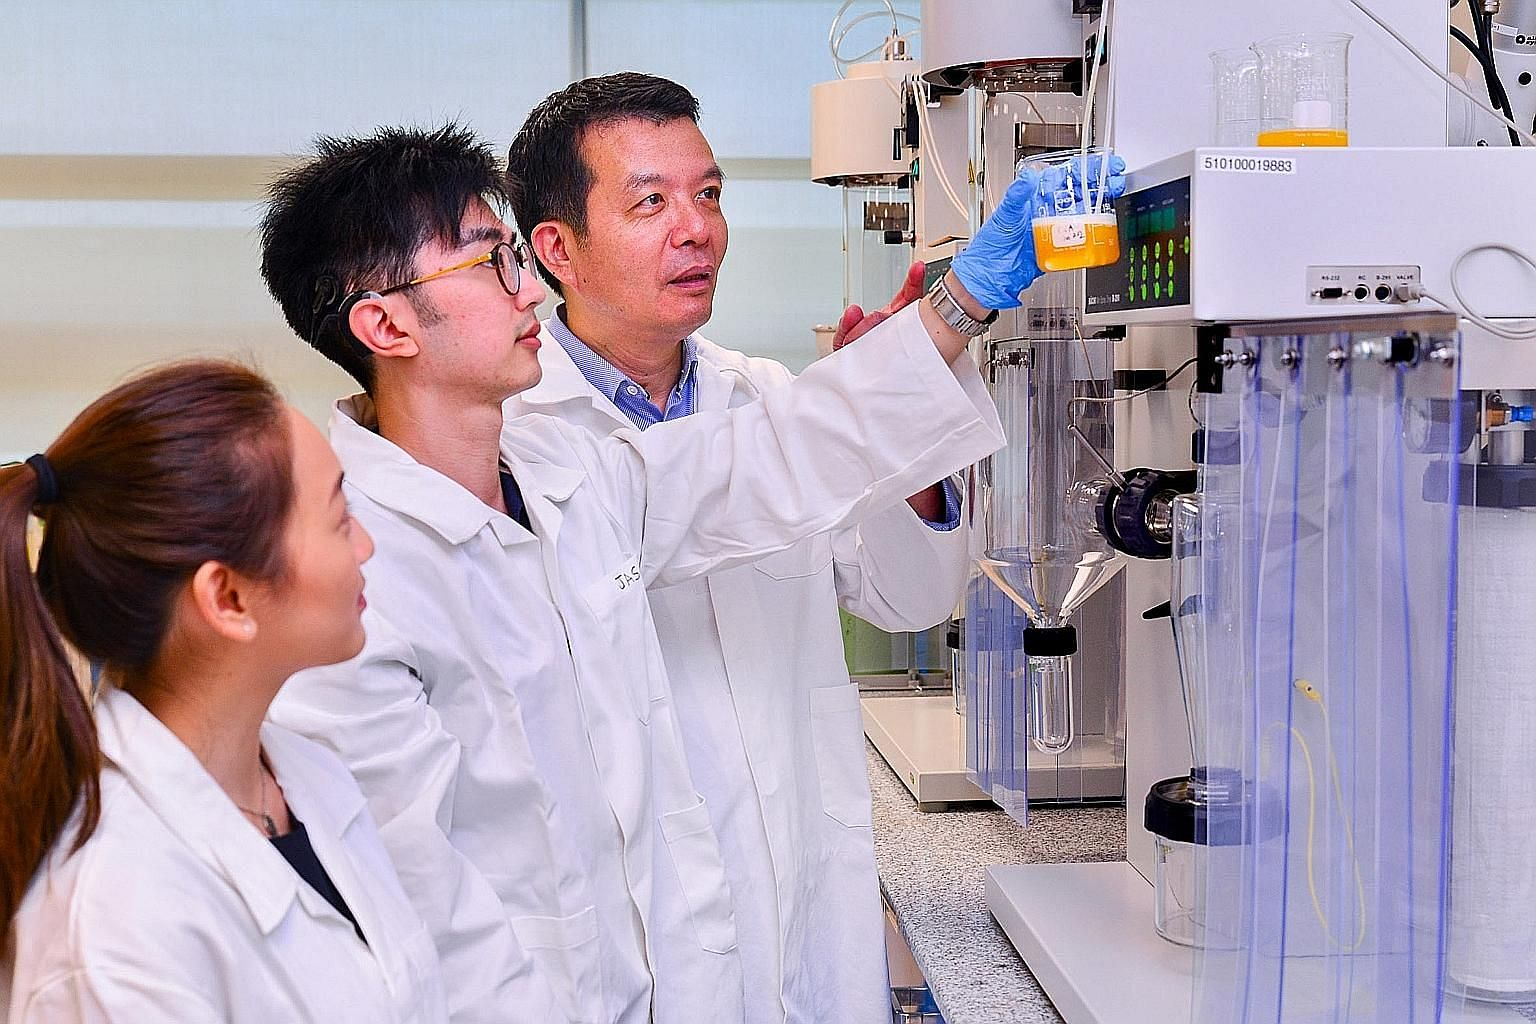 NTU's Food Science and Technology programme director William Chen, researcher Jason Quek and student Verene Chou doing an experiment on fruit juice.